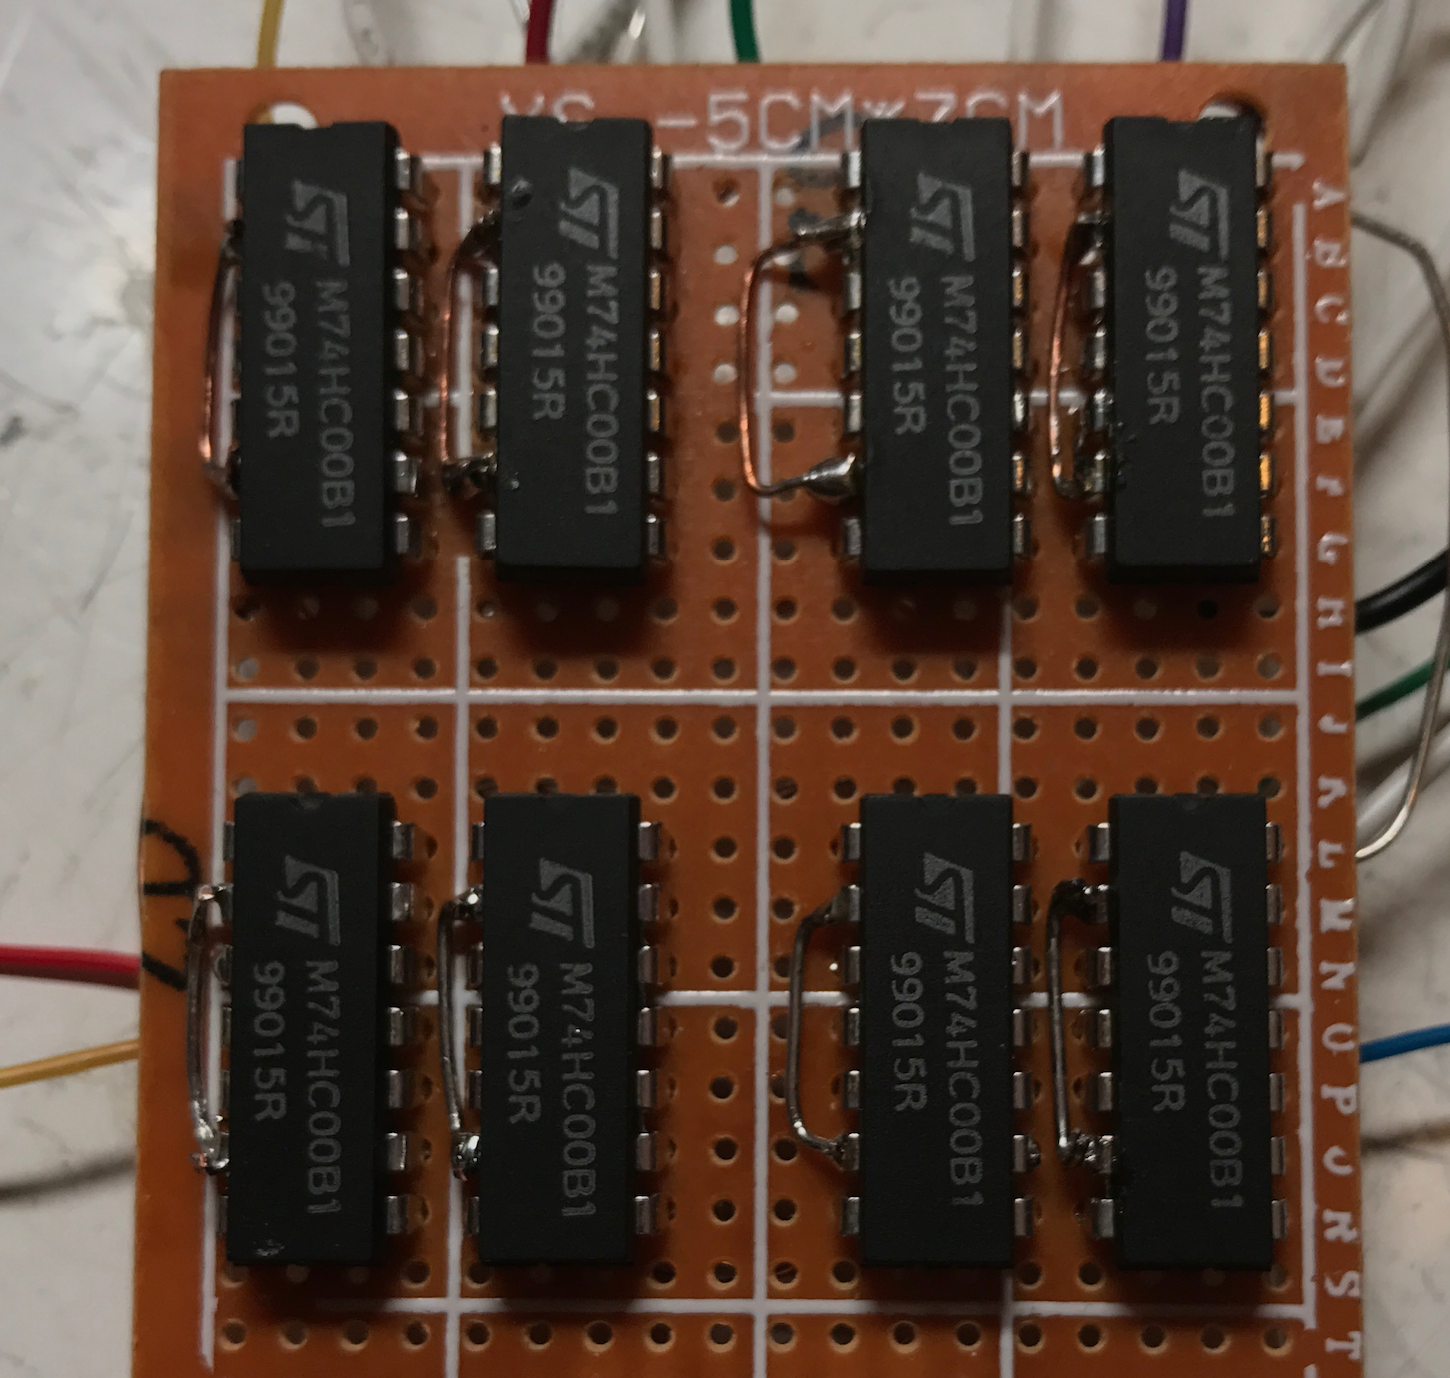 Building A 4 Bit Shift Register From 7400 Nand Gates For Gpio Output Logic Diagram Of Universal This Is Good Start But Latches By Themselves Are Insufficient To Build Clocking Needed